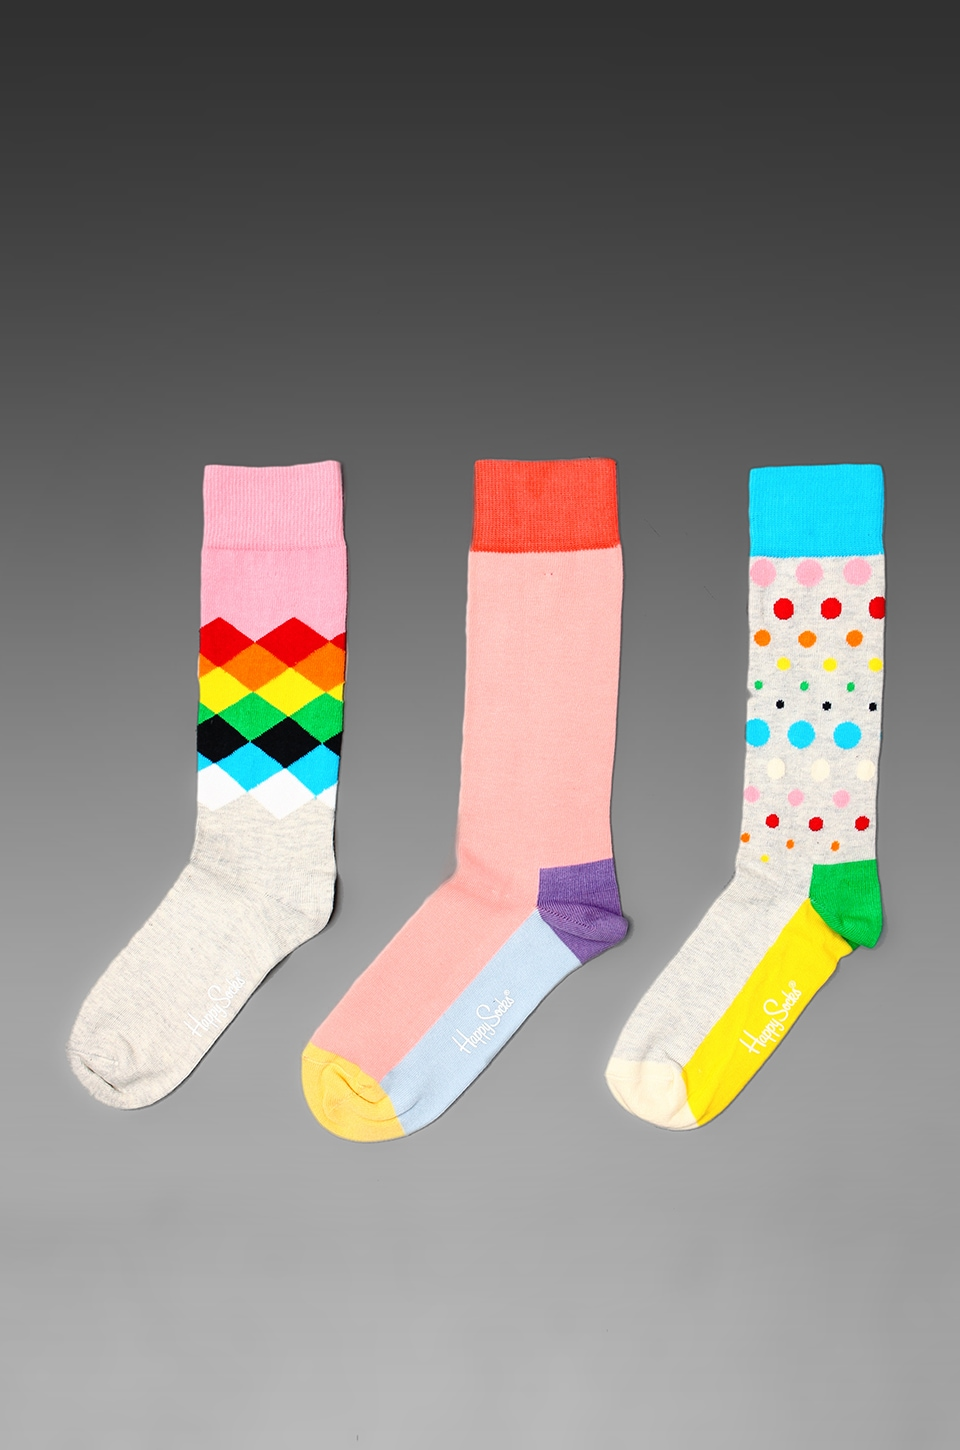 Happy Socks 3 Pack in Faded Diamonds/Five Colour/Disco Dot